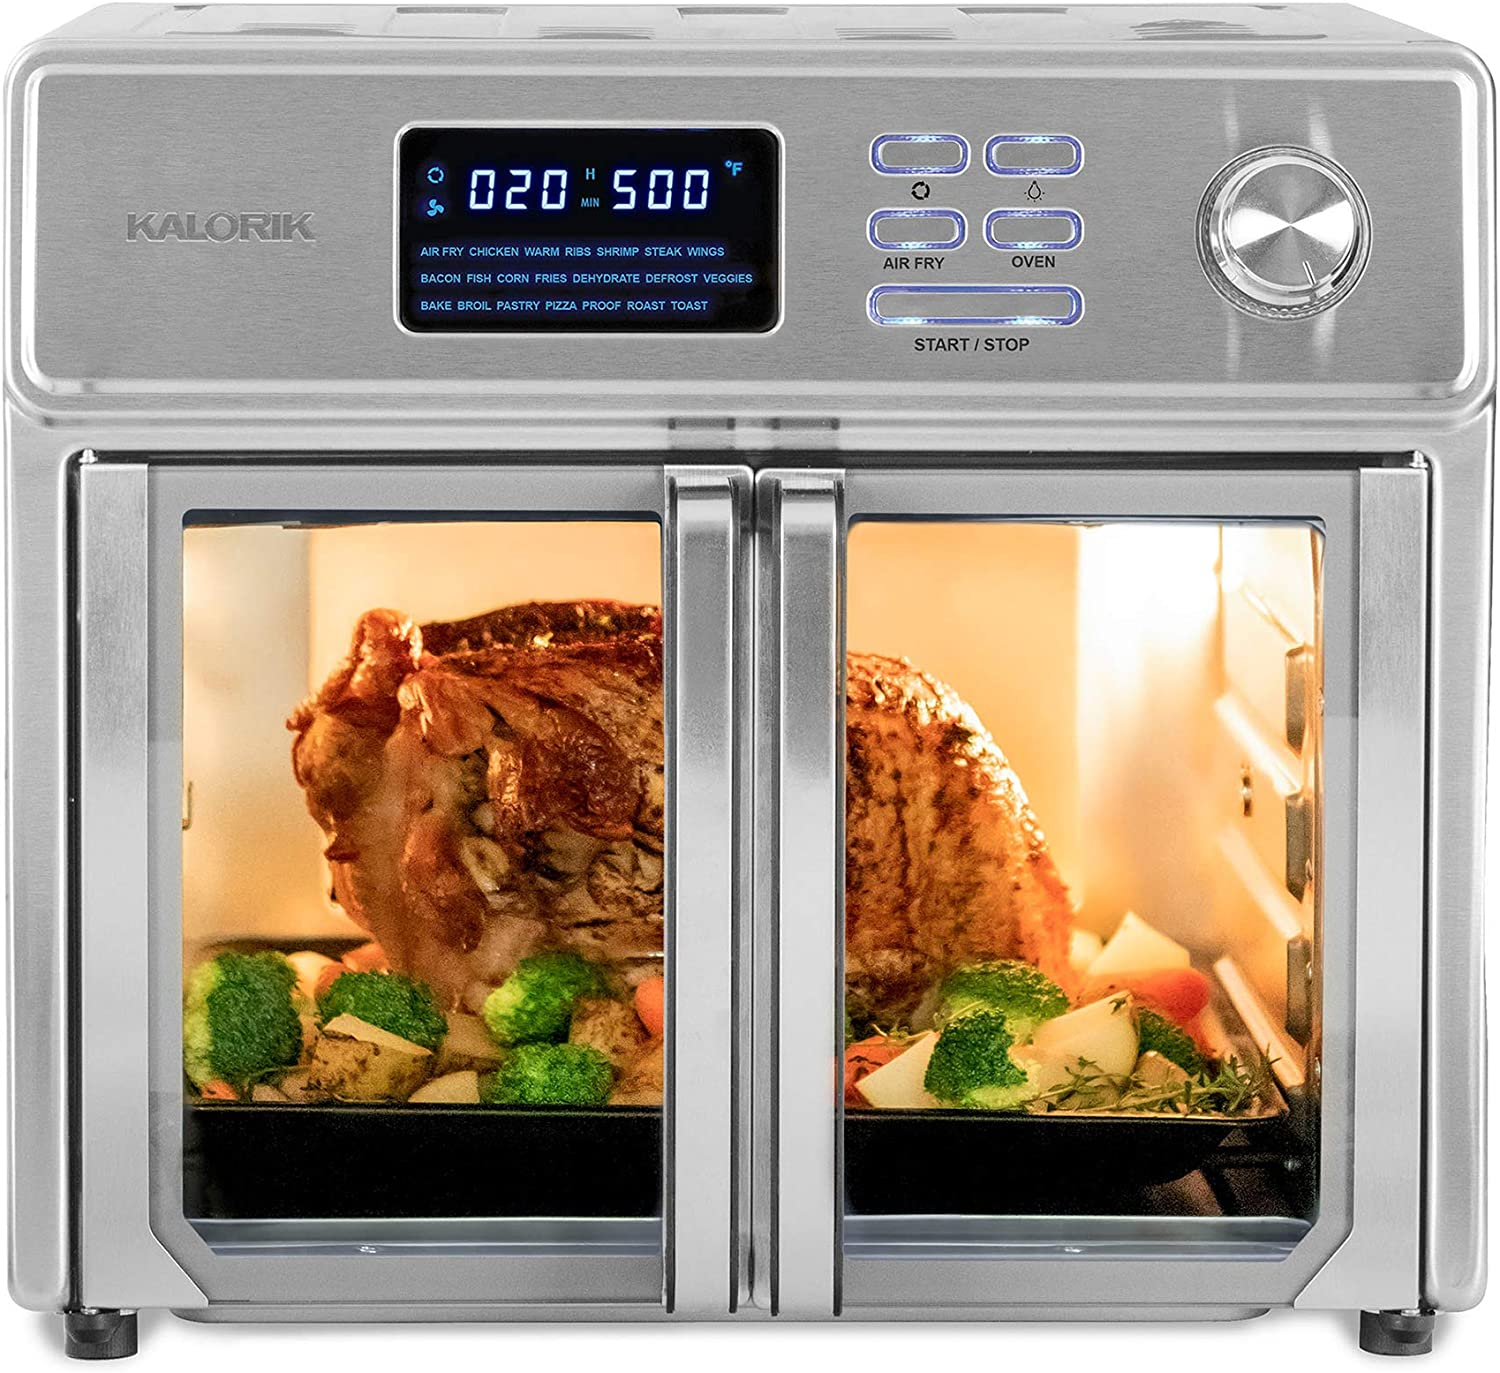 Kalorik 26 QT Digital Maxx Air Fryer Oven with 9 Accessories, Roaster, Broiler, Rotisserie, Dehydrator, Oven, Toaster, Pizza Oven and Slow Cooker. Includes Cookbook. Sears up to 500⁰F. Extra Large Capacity, All in One Appliance. Stainless Steel. AFO 46045 SS